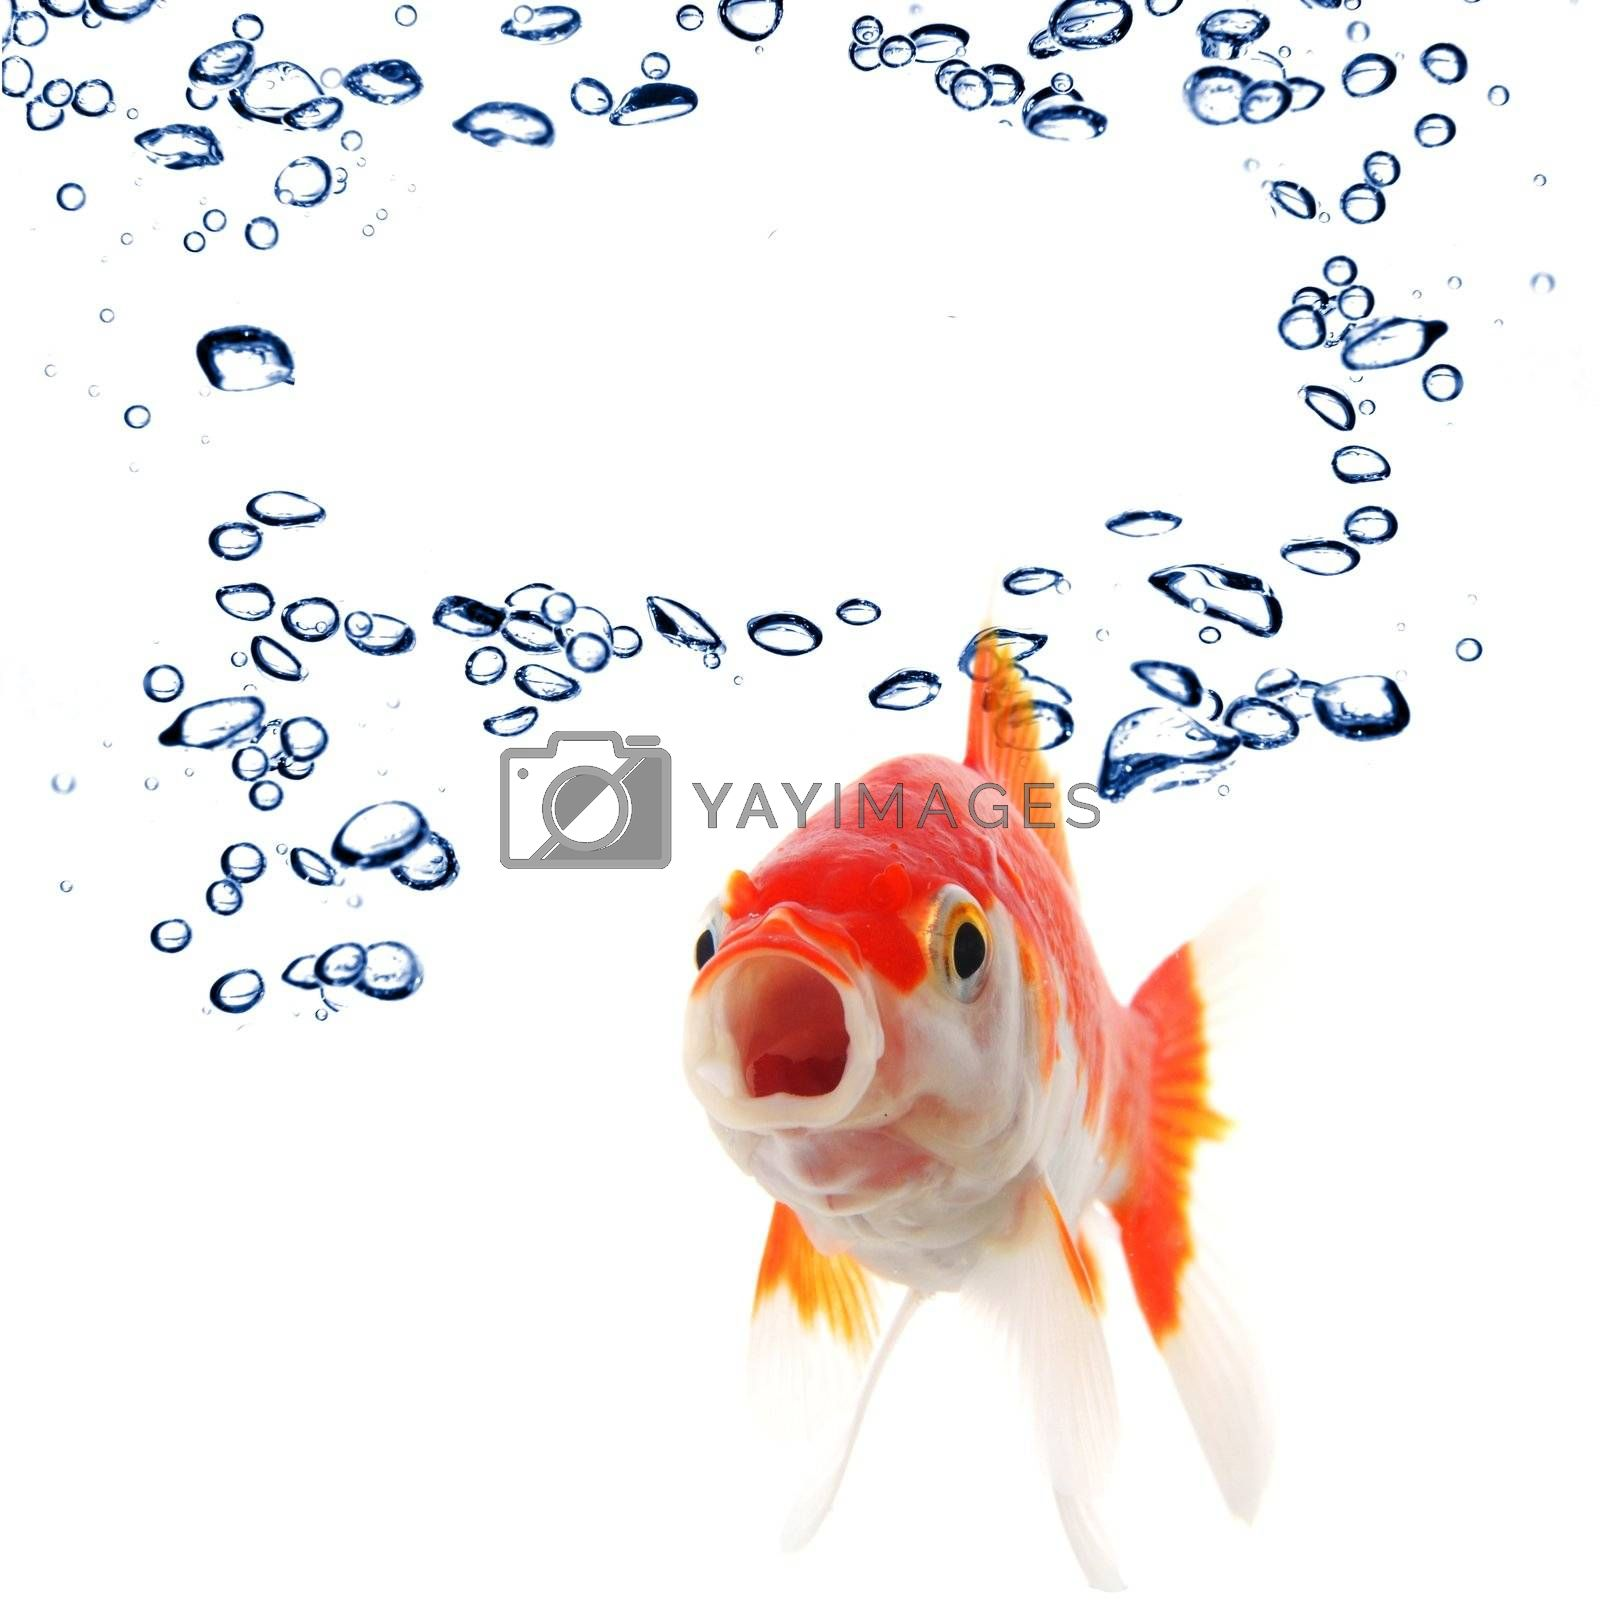 Royalty free image of goldfish and copyspace by gunnar3000